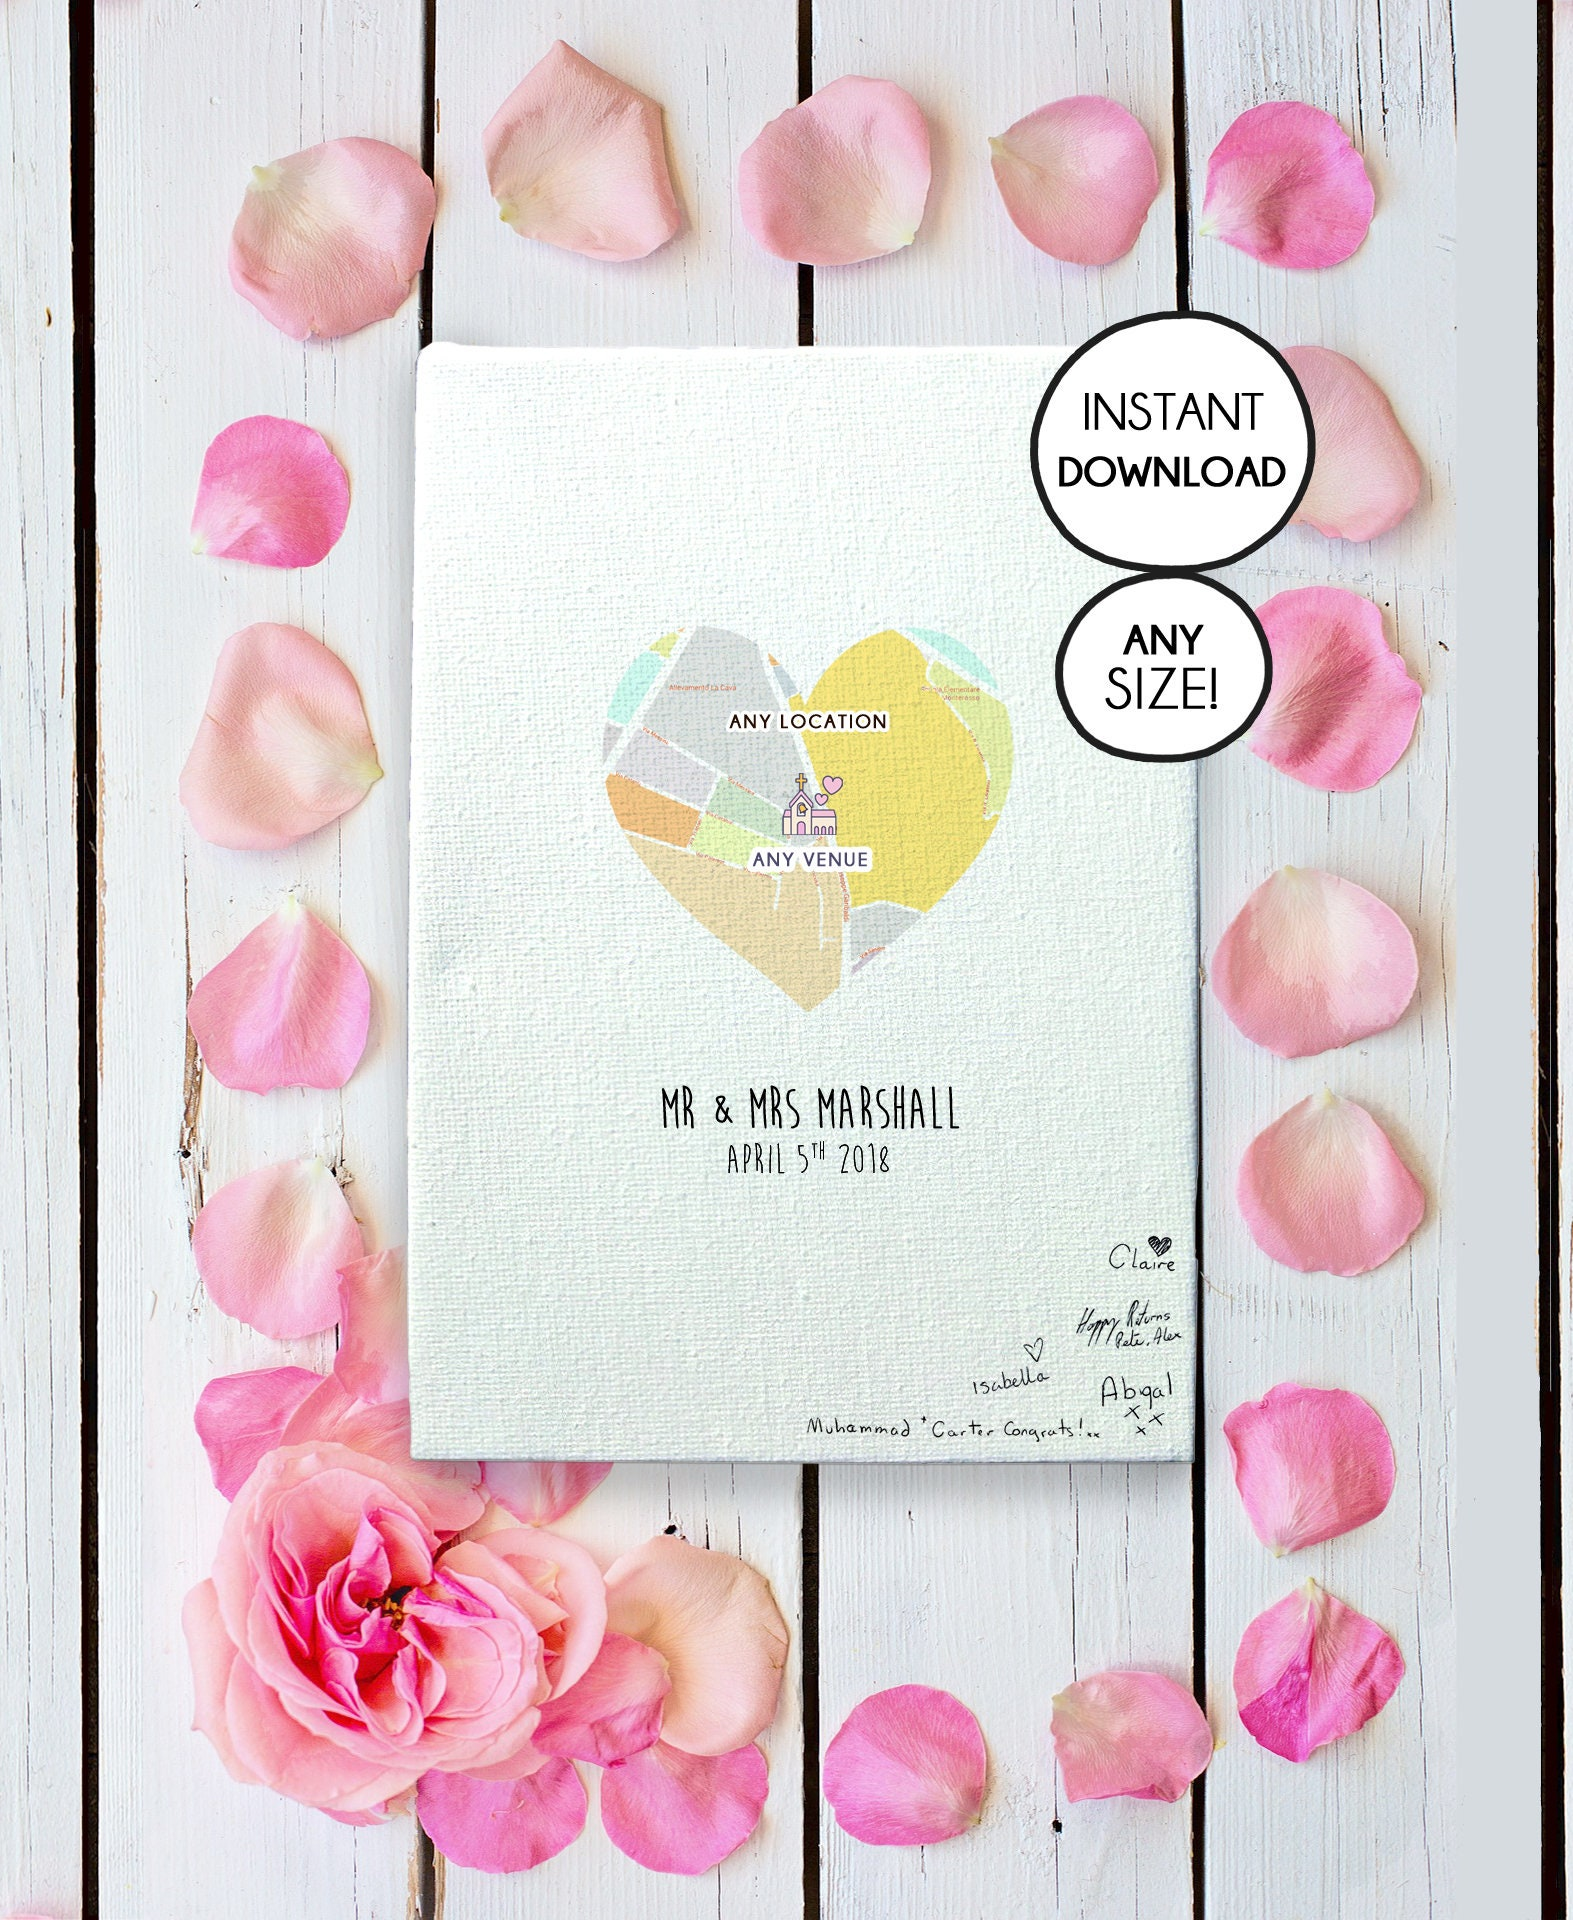 Personalized Wedding Canvas: Personalized Wedding Canvas Guest Book Canvas Wedding